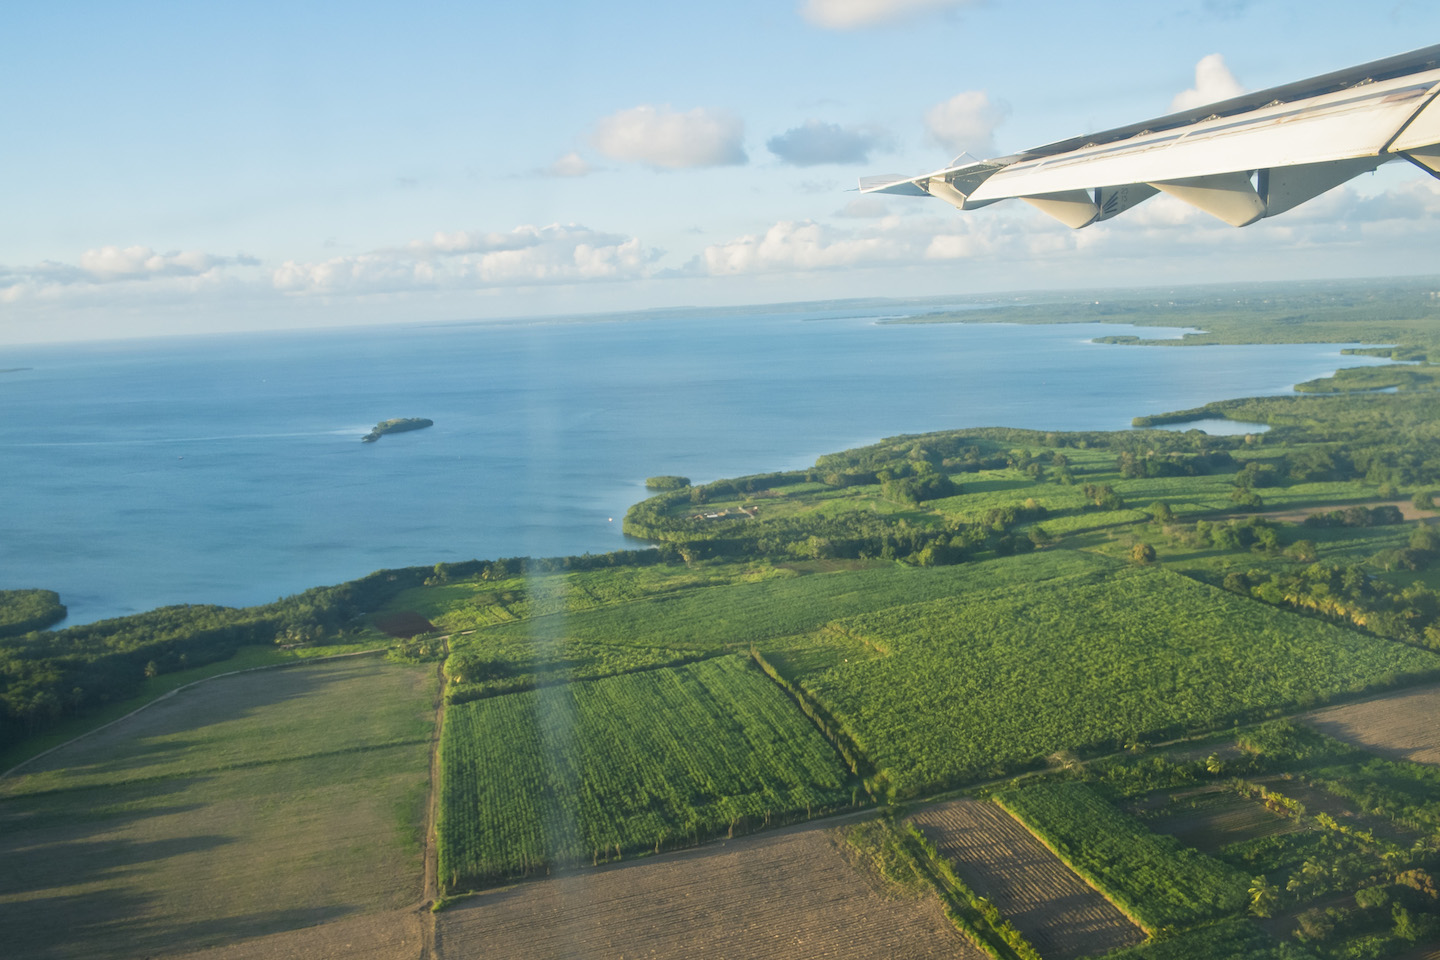 There are many direct flights to Guadeloupe from Europe and Americas. Flying over French Guadelupe you will see how diverse the island is. With its waters and geography.